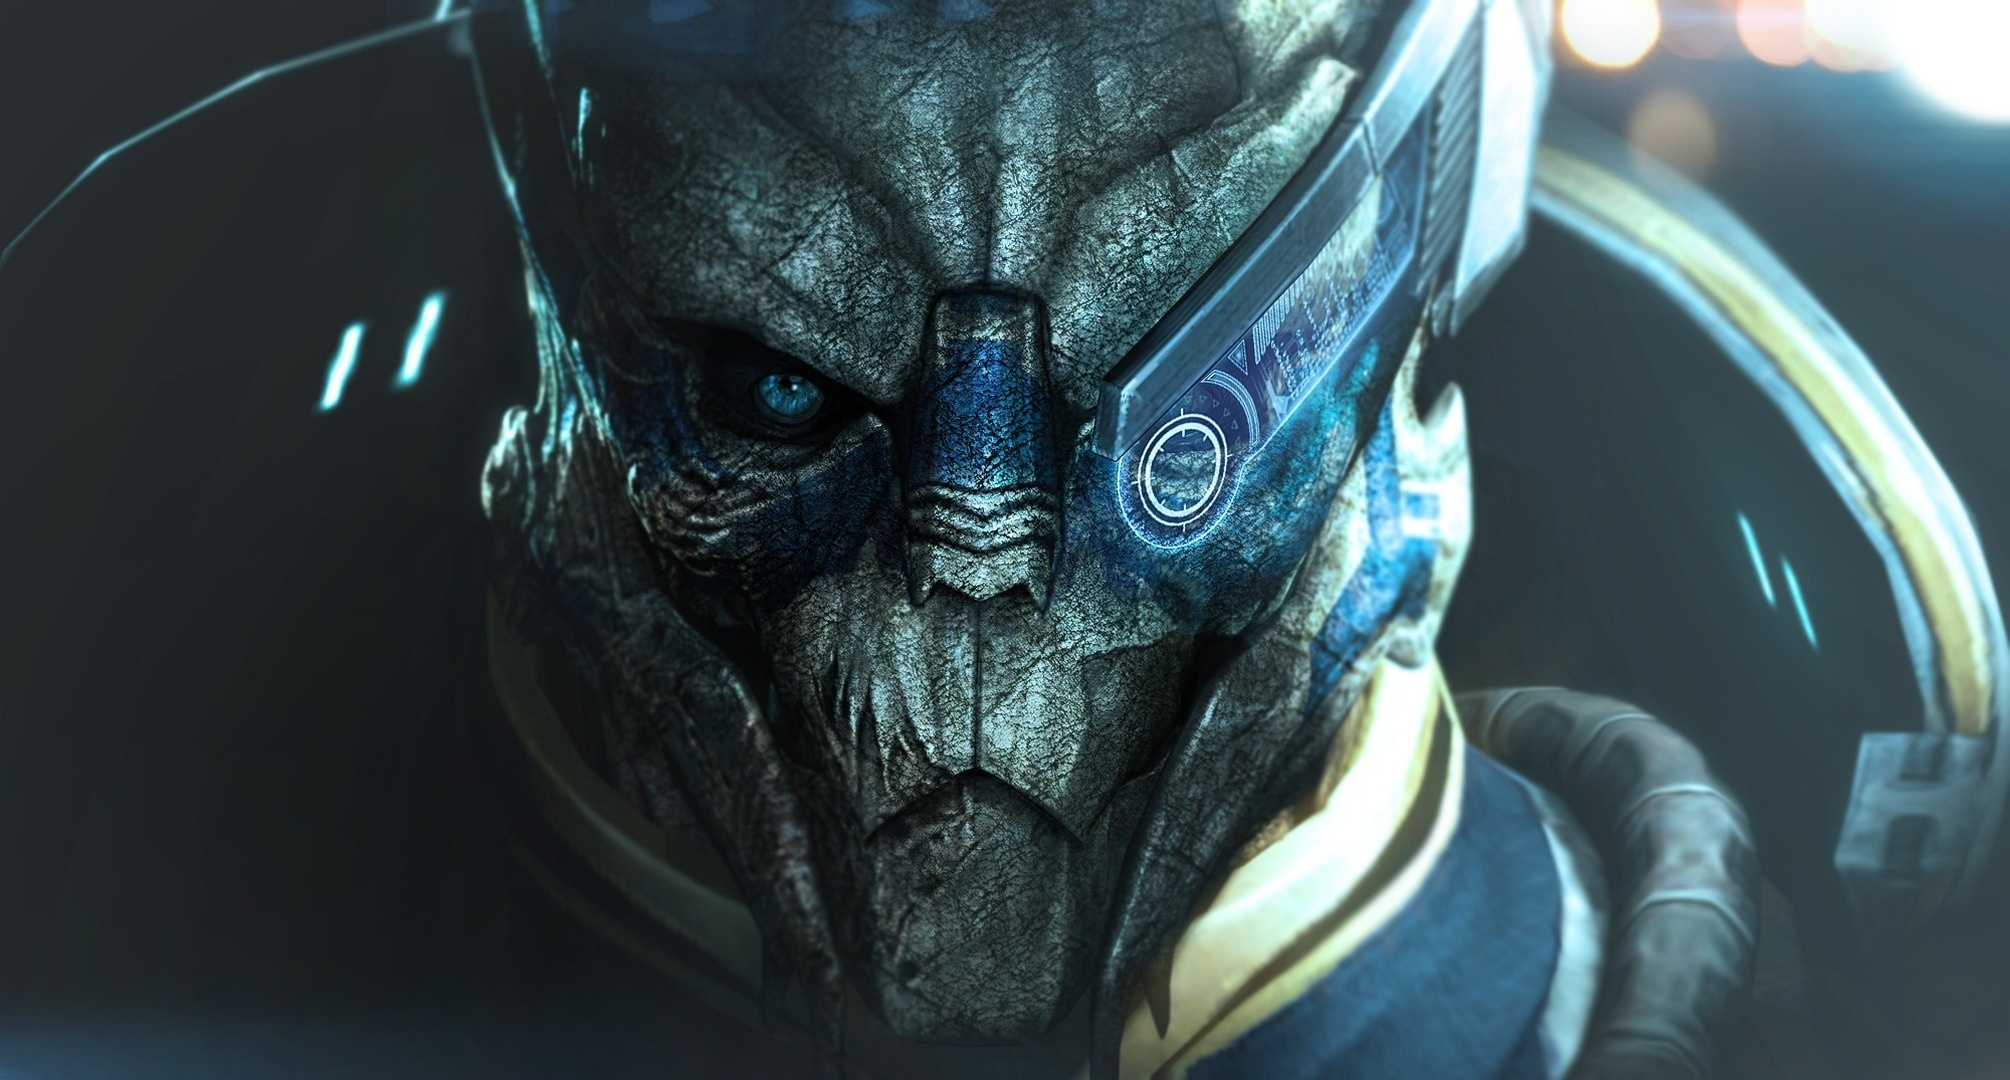 wallpaper garrus vakarian, turian, mass effect desktop wallpaper